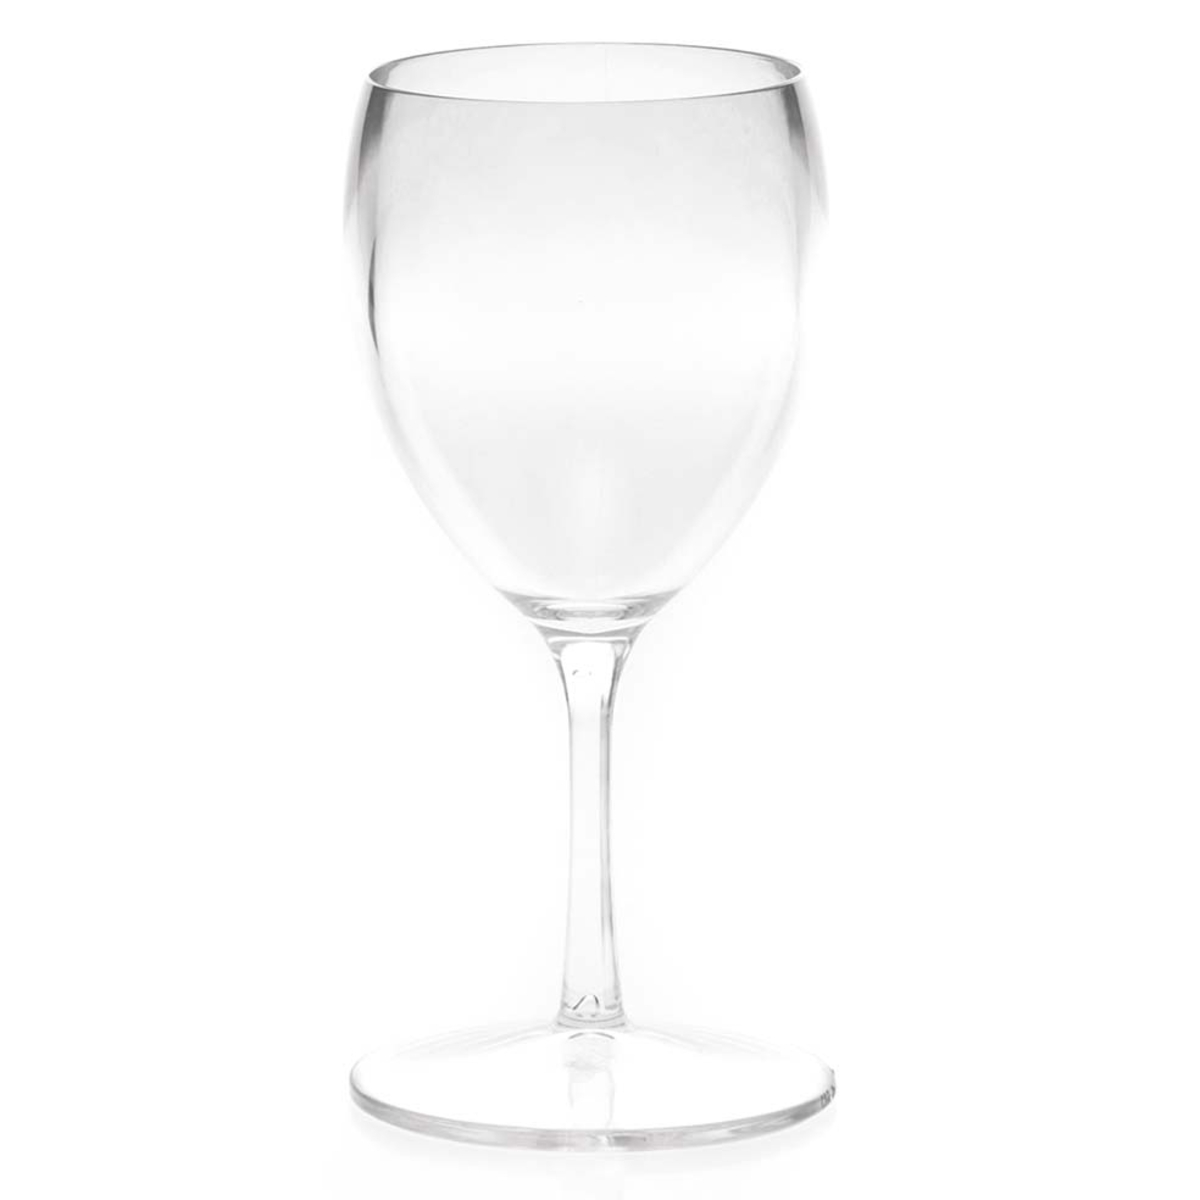 Verre à pied copolyester 19 cl Cepage Chic Conception